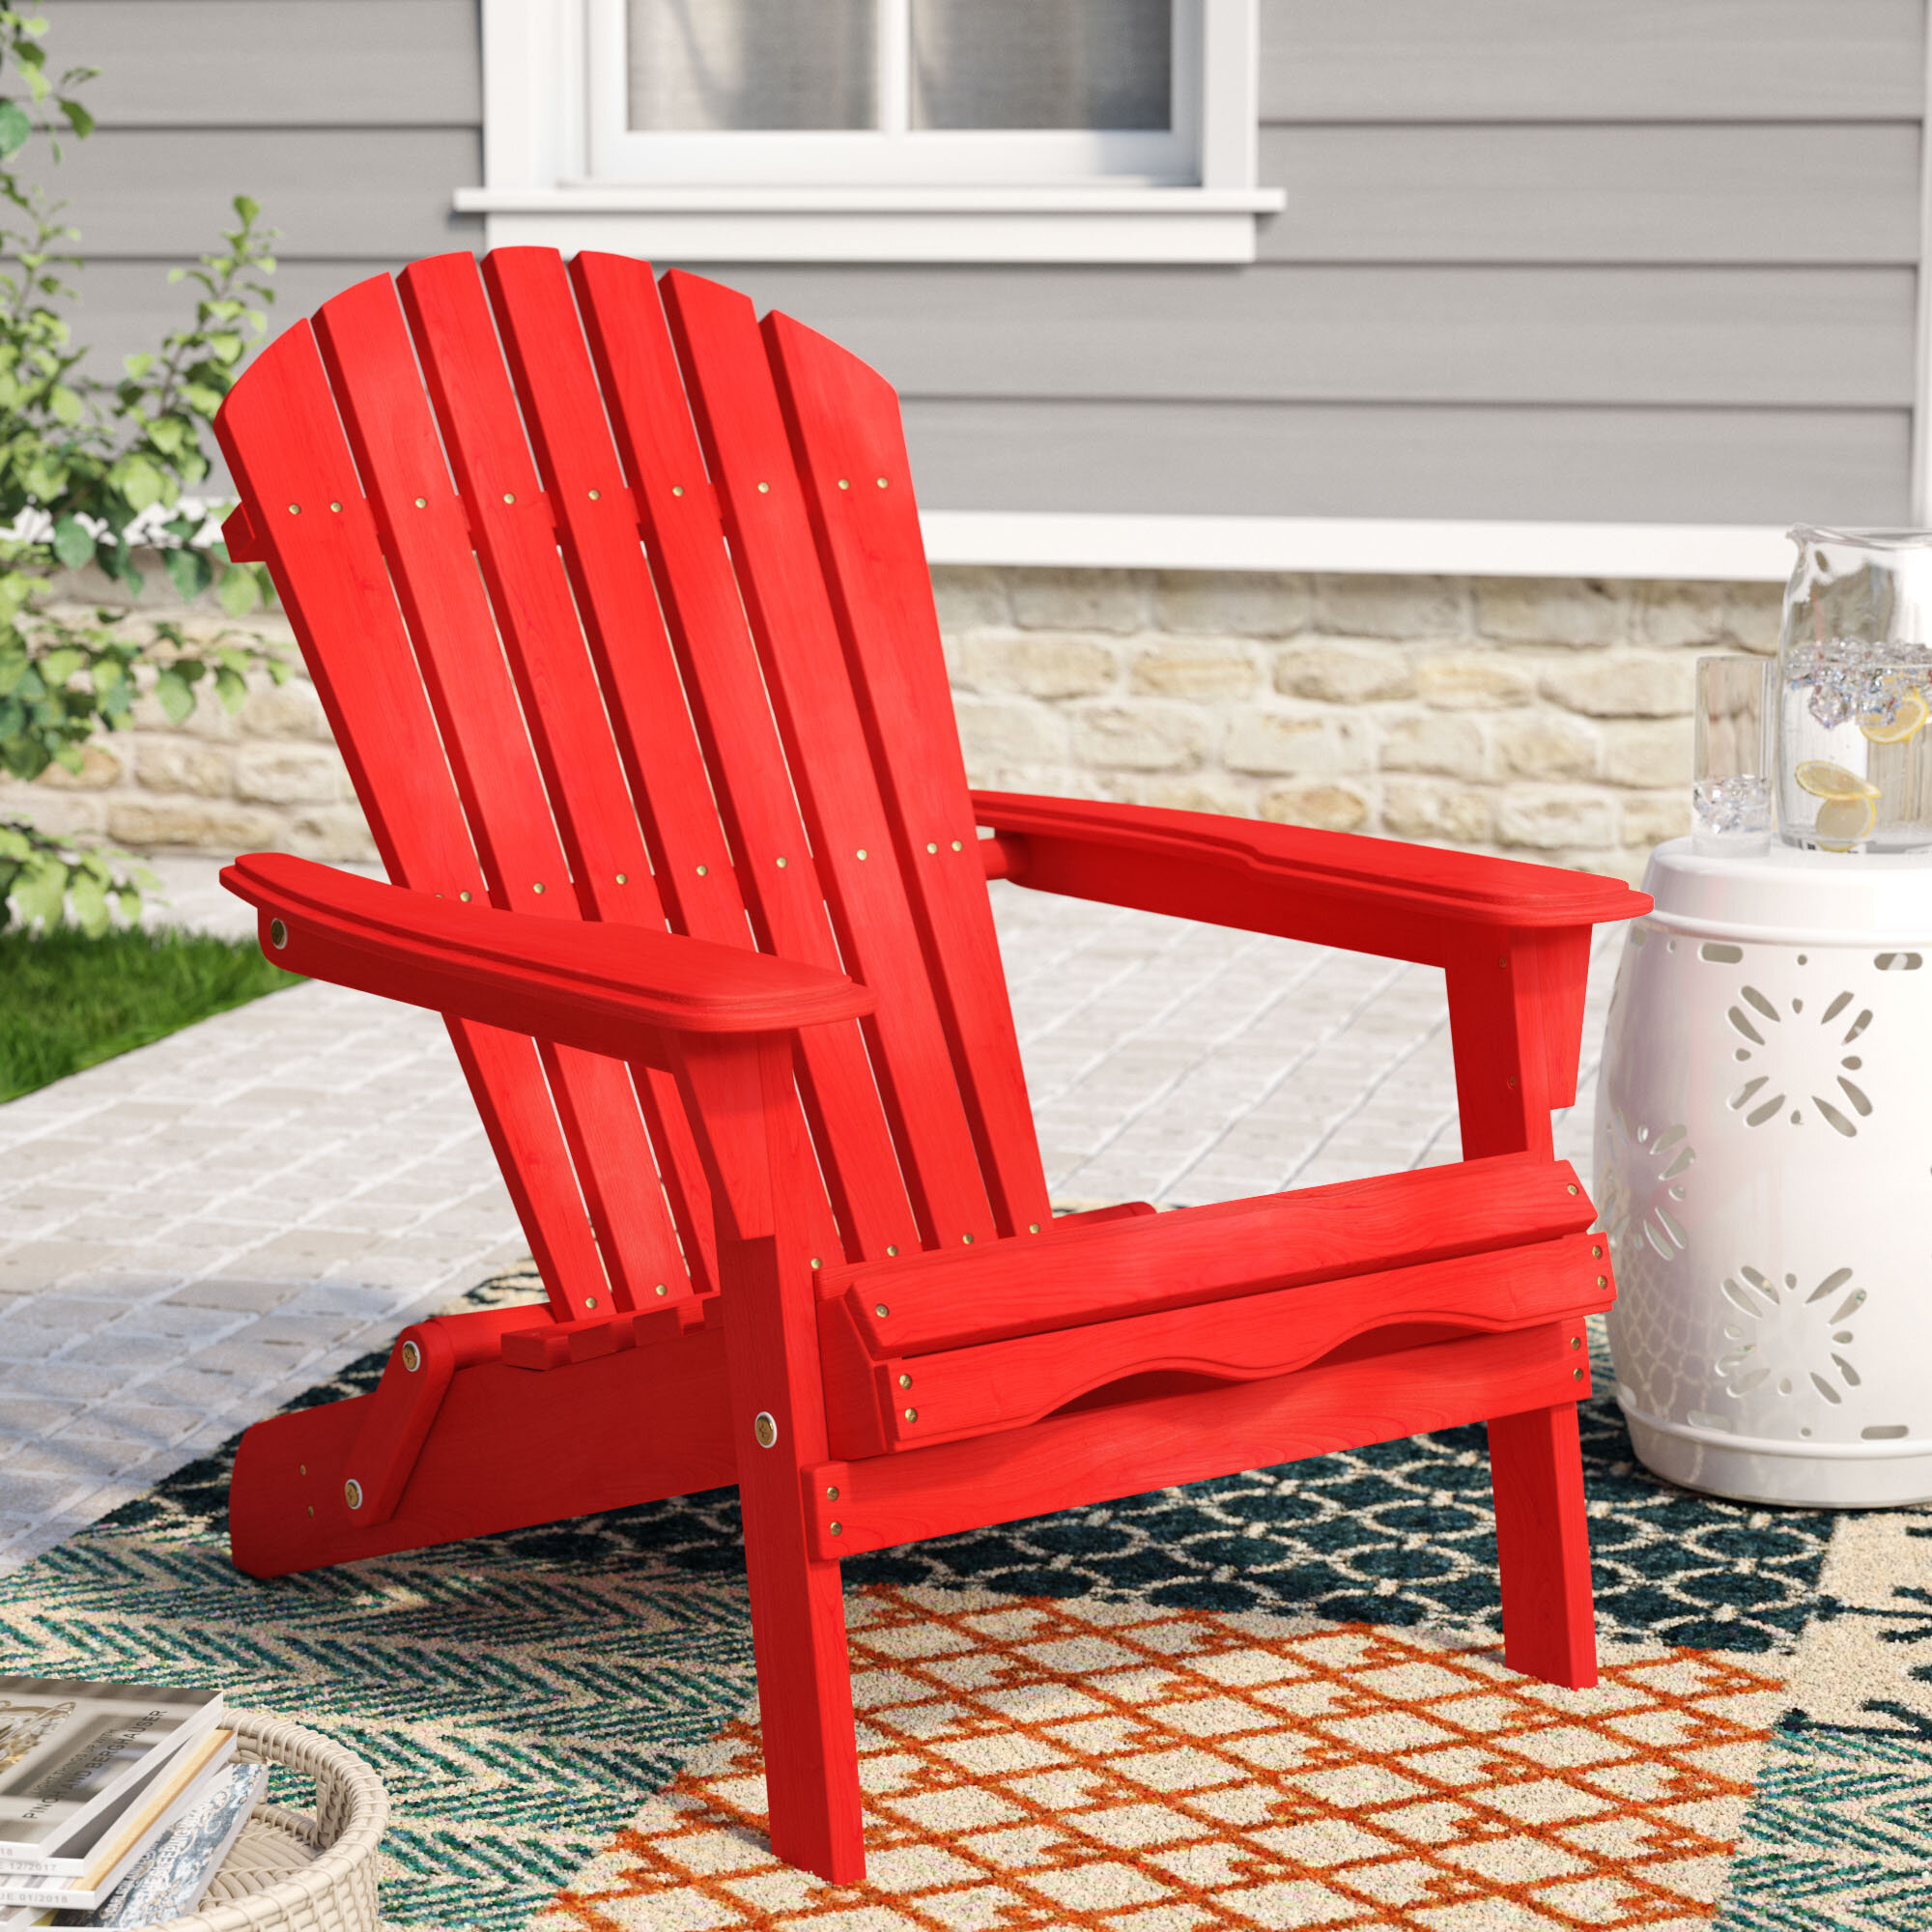 Awe Inspiring Cuyler Solid Wood Folding Adirondack Chair Squirreltailoven Fun Painted Chair Ideas Images Squirreltailovenorg